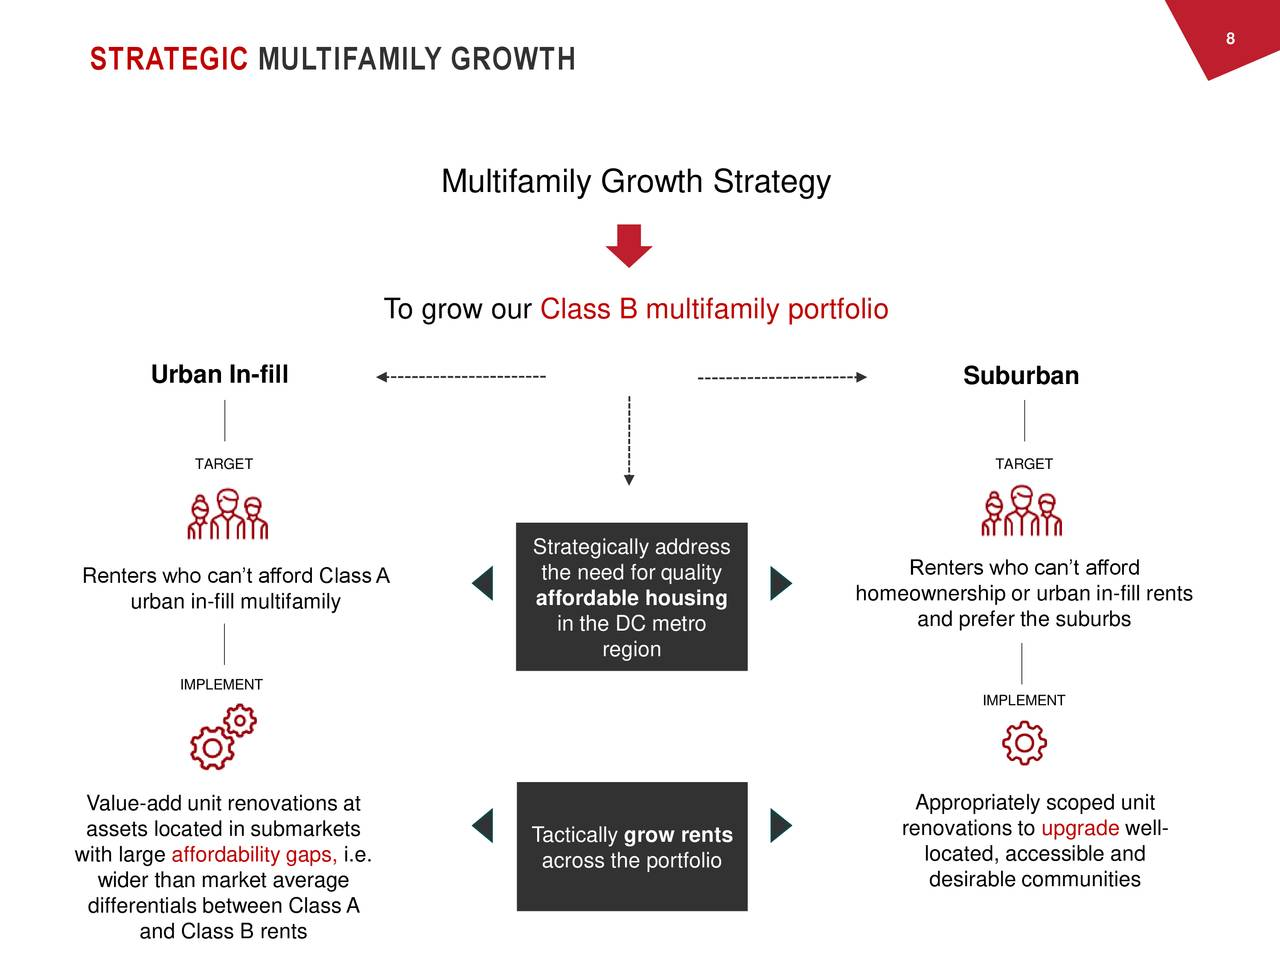 STRATEGIC MULTIFAMILY GROWTH Multifamily Growth Strategy To grow our Class B multifamily portfolio Urban In-fill Suburban TARGET TARGET Strategically address Renters who can't afford ClassA the need for quality Renters who can't afford affordable housing homeownership or urban in-fill rents urban in-fill multifamily and prefer the suburbs in the DC metro region IMPLEMENT IMPLEMENT Value-add unit renovations at Appropriately scoped unit assets located in submarkets Tactically grow rents renovations to upgrade well- with large affordability gaps, i.e. located, accessible and across the portfolio wider than market average desirable communities differentials between Class A and Class B rents